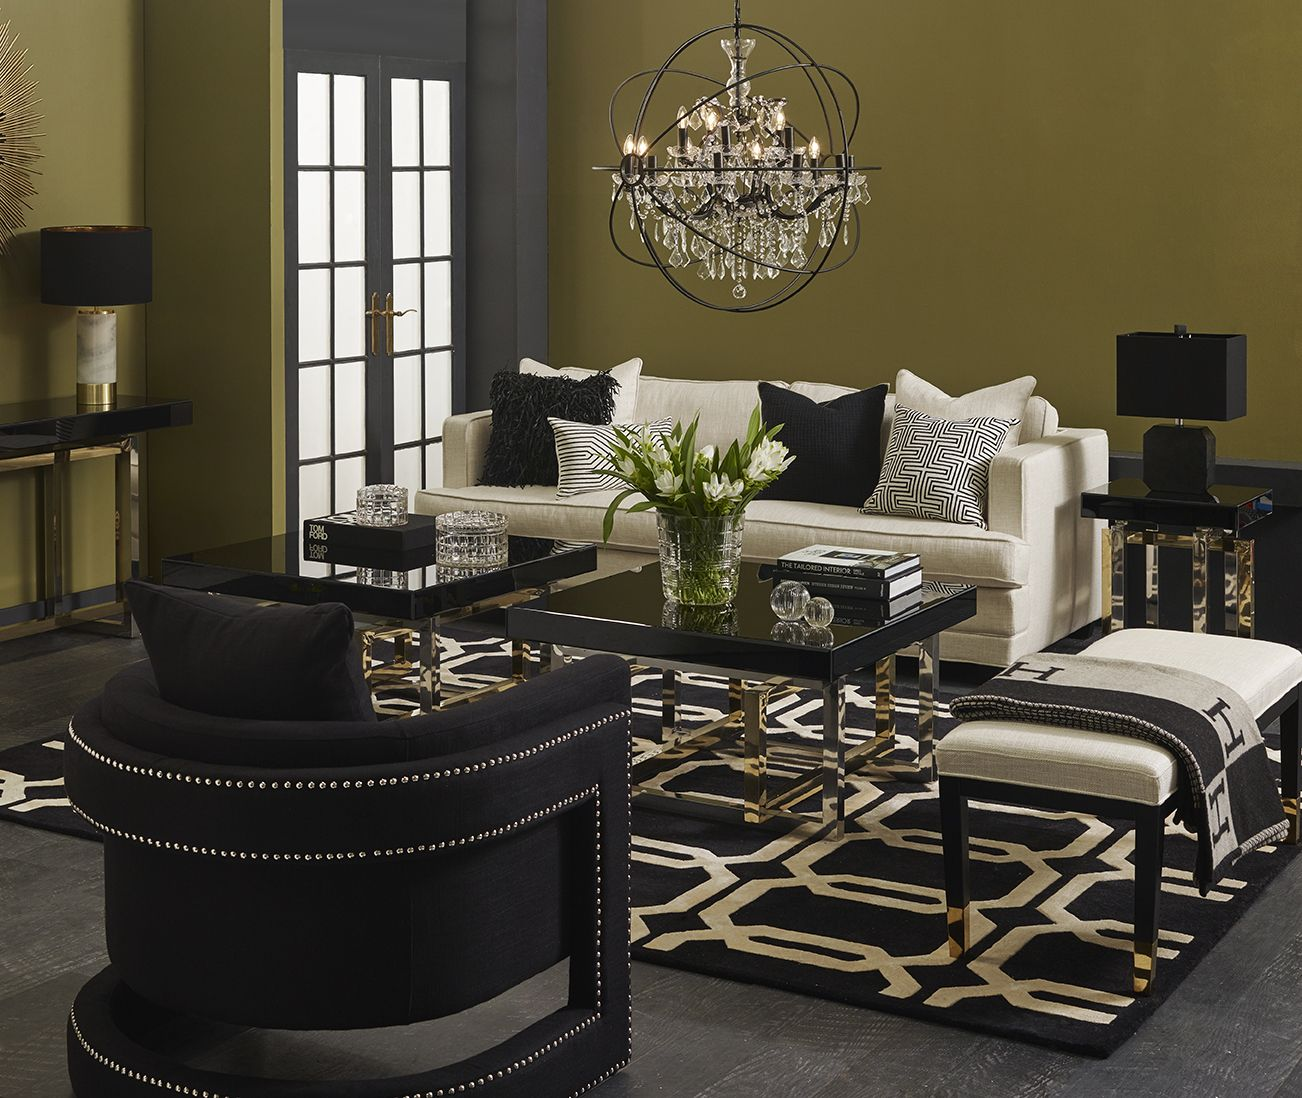 shop the look  cafe inspired living room  black and gold